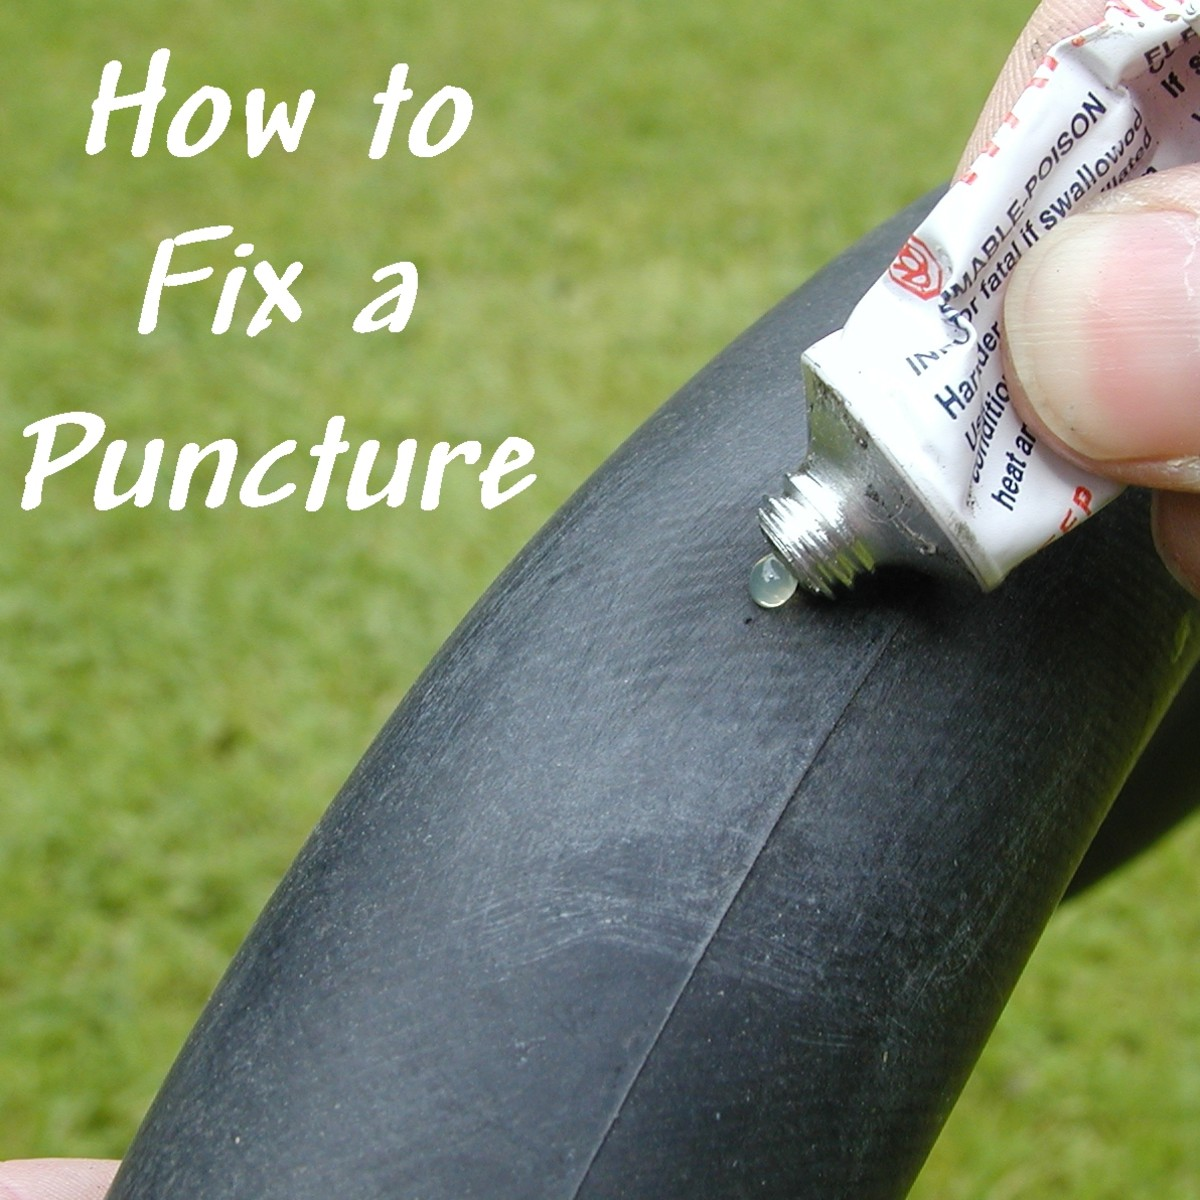 How to Fix a Punctured Bicycle Tube and Tire: 10 Steps With Pictures